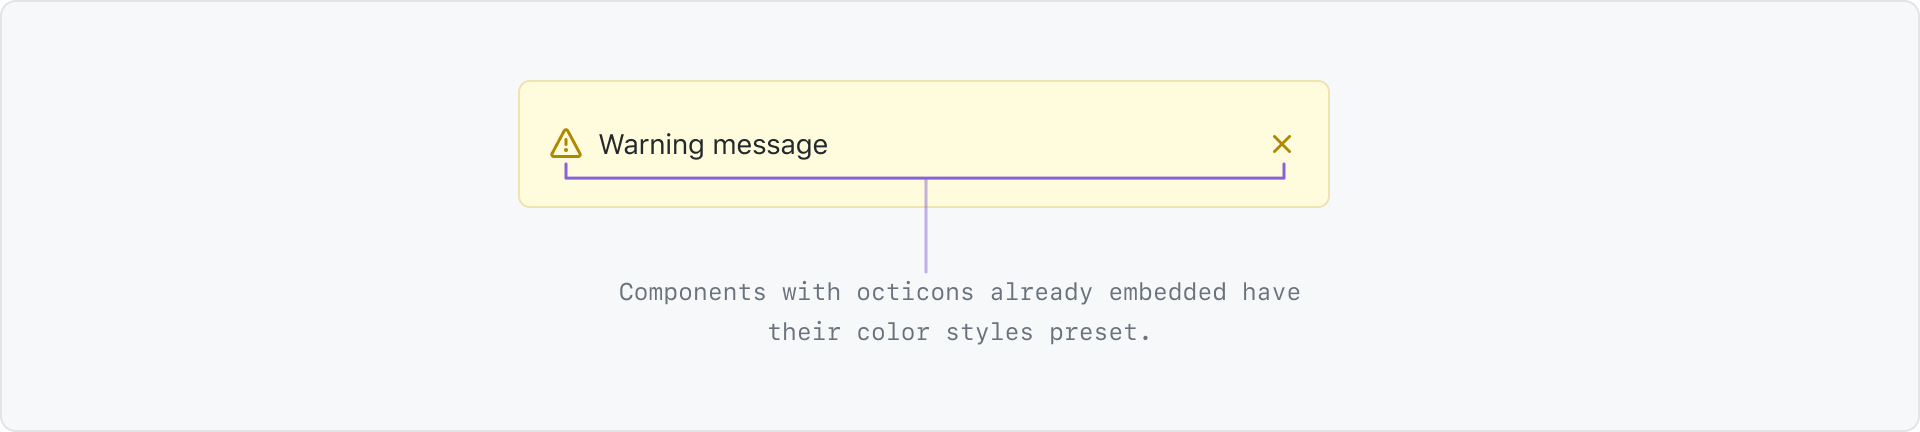 Components with octicons already embedded have their color styles preset. This is an example of a flash alert where the alert icon and close icon are preset to a dark yellow.